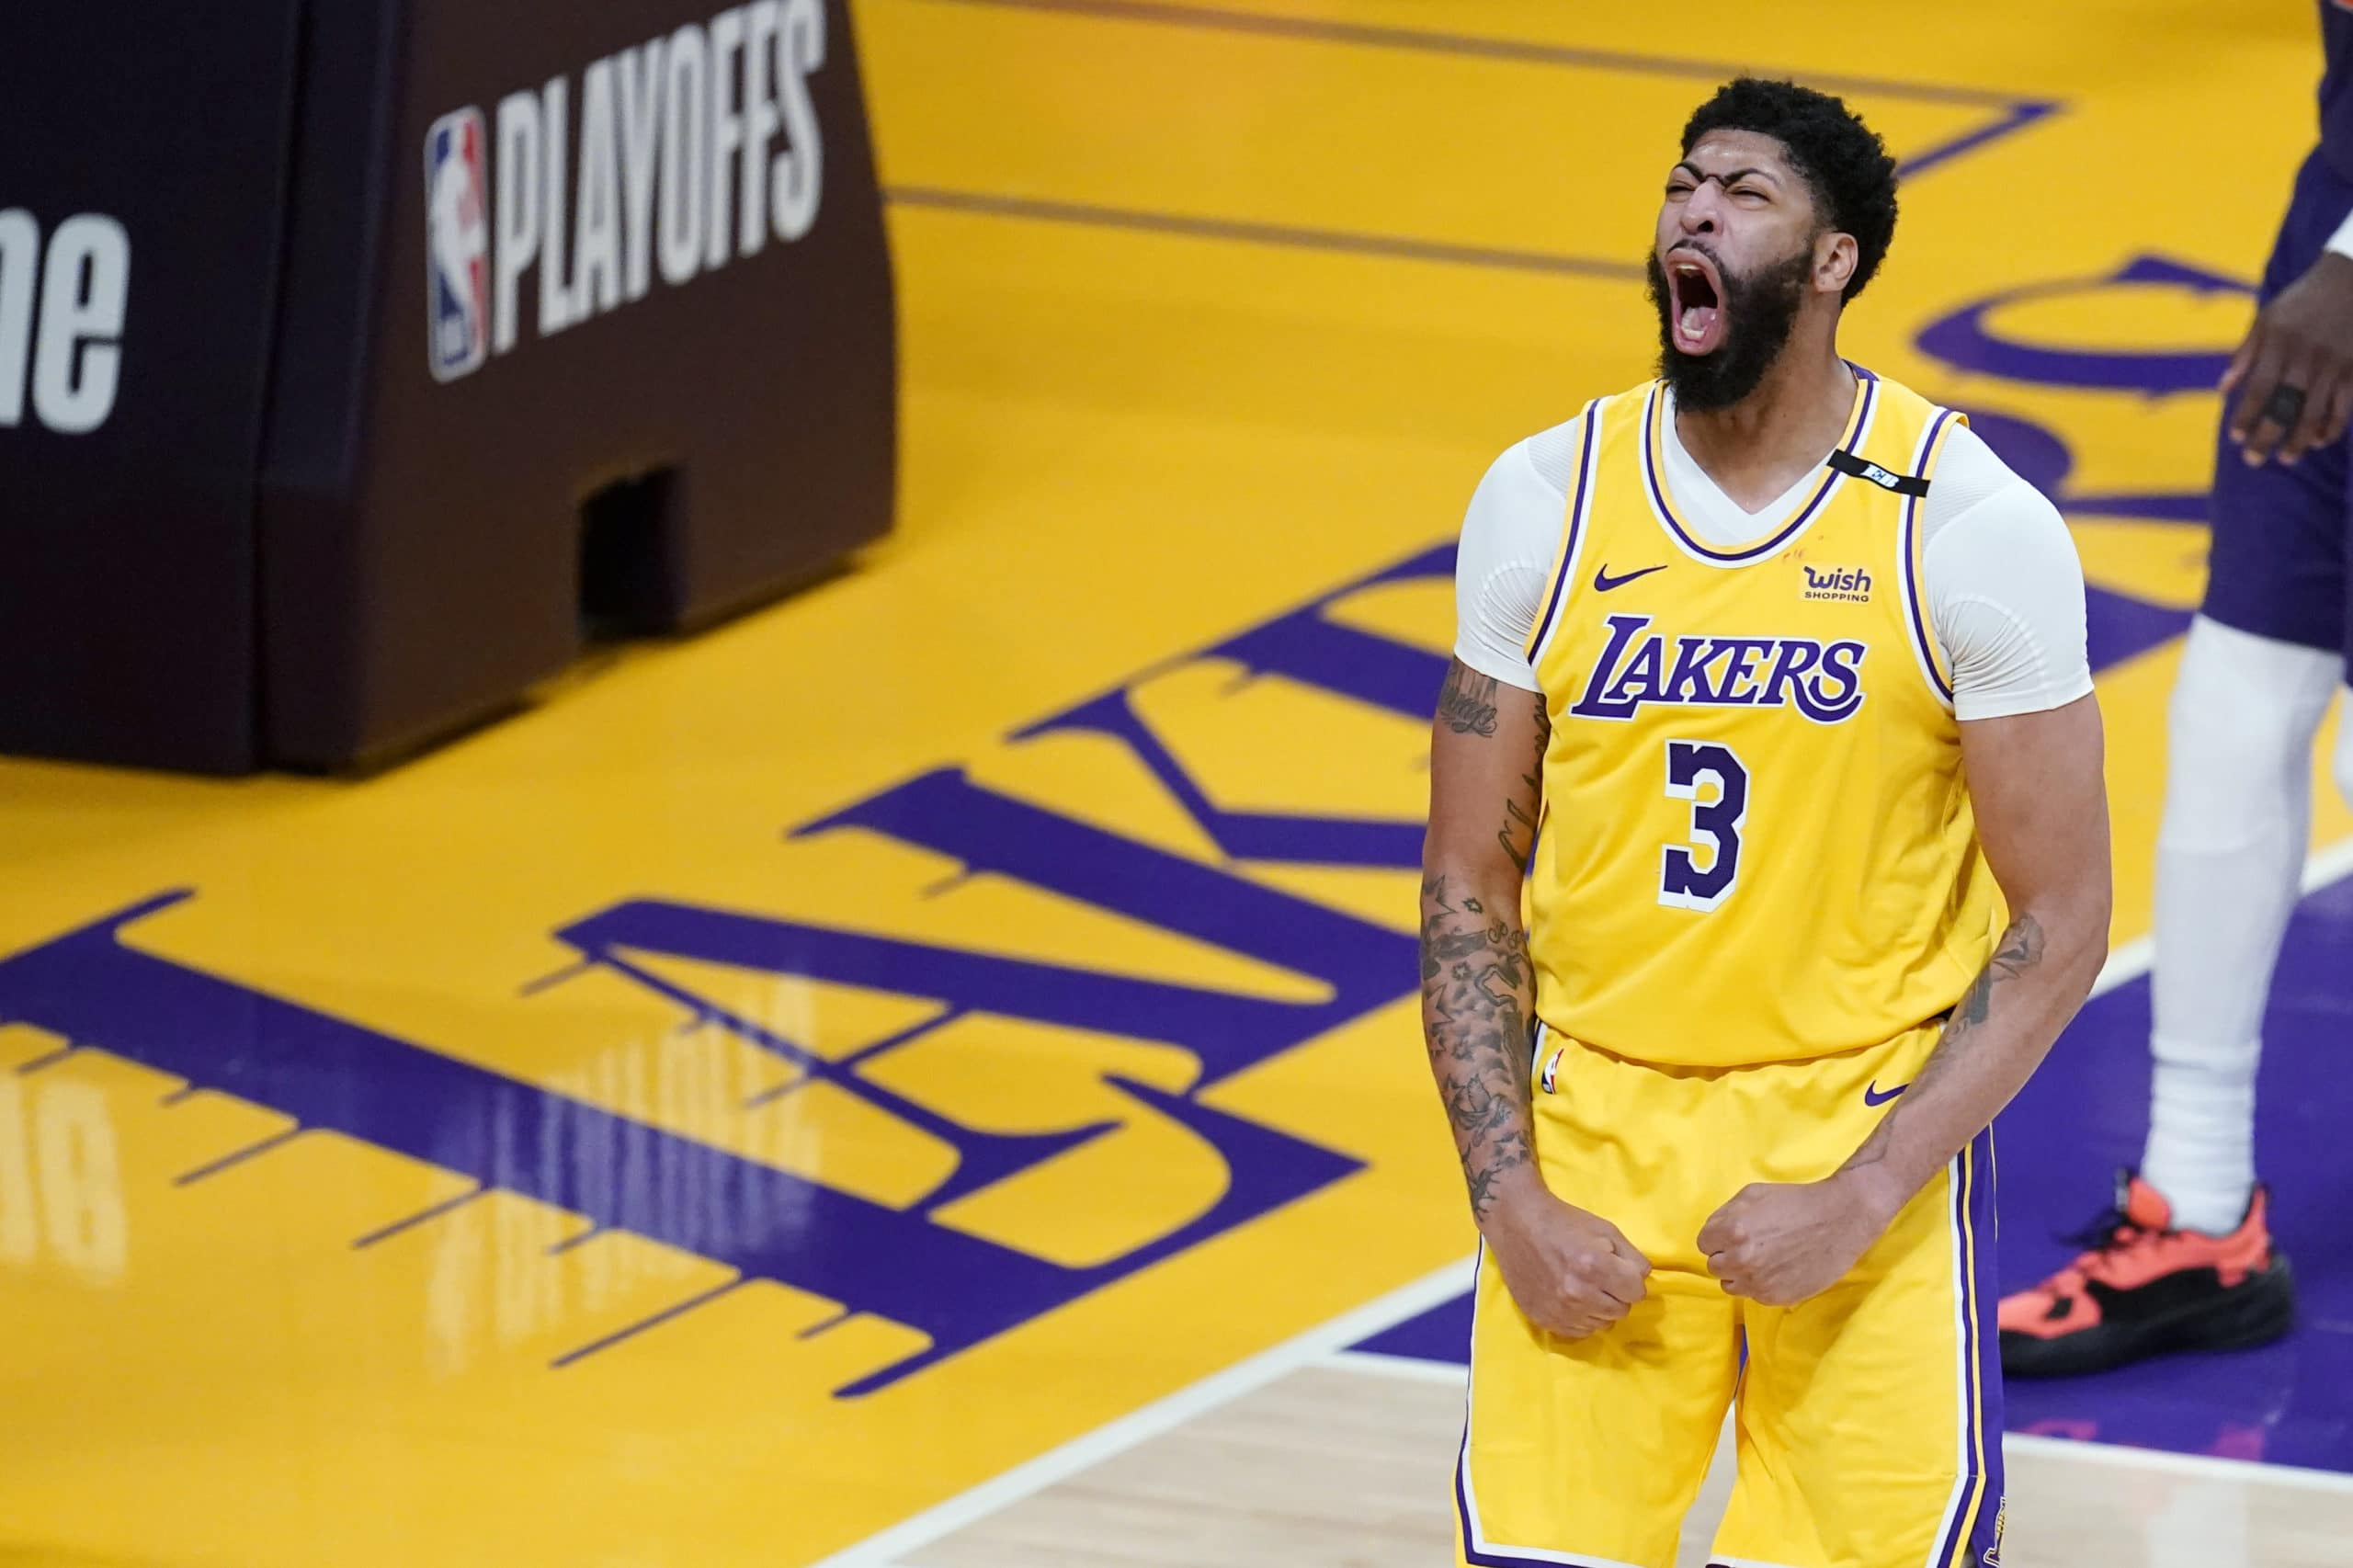 lakers-anthony-davis-says-game-4-vs-suns-is-glorious-game-of-the-series.jpg